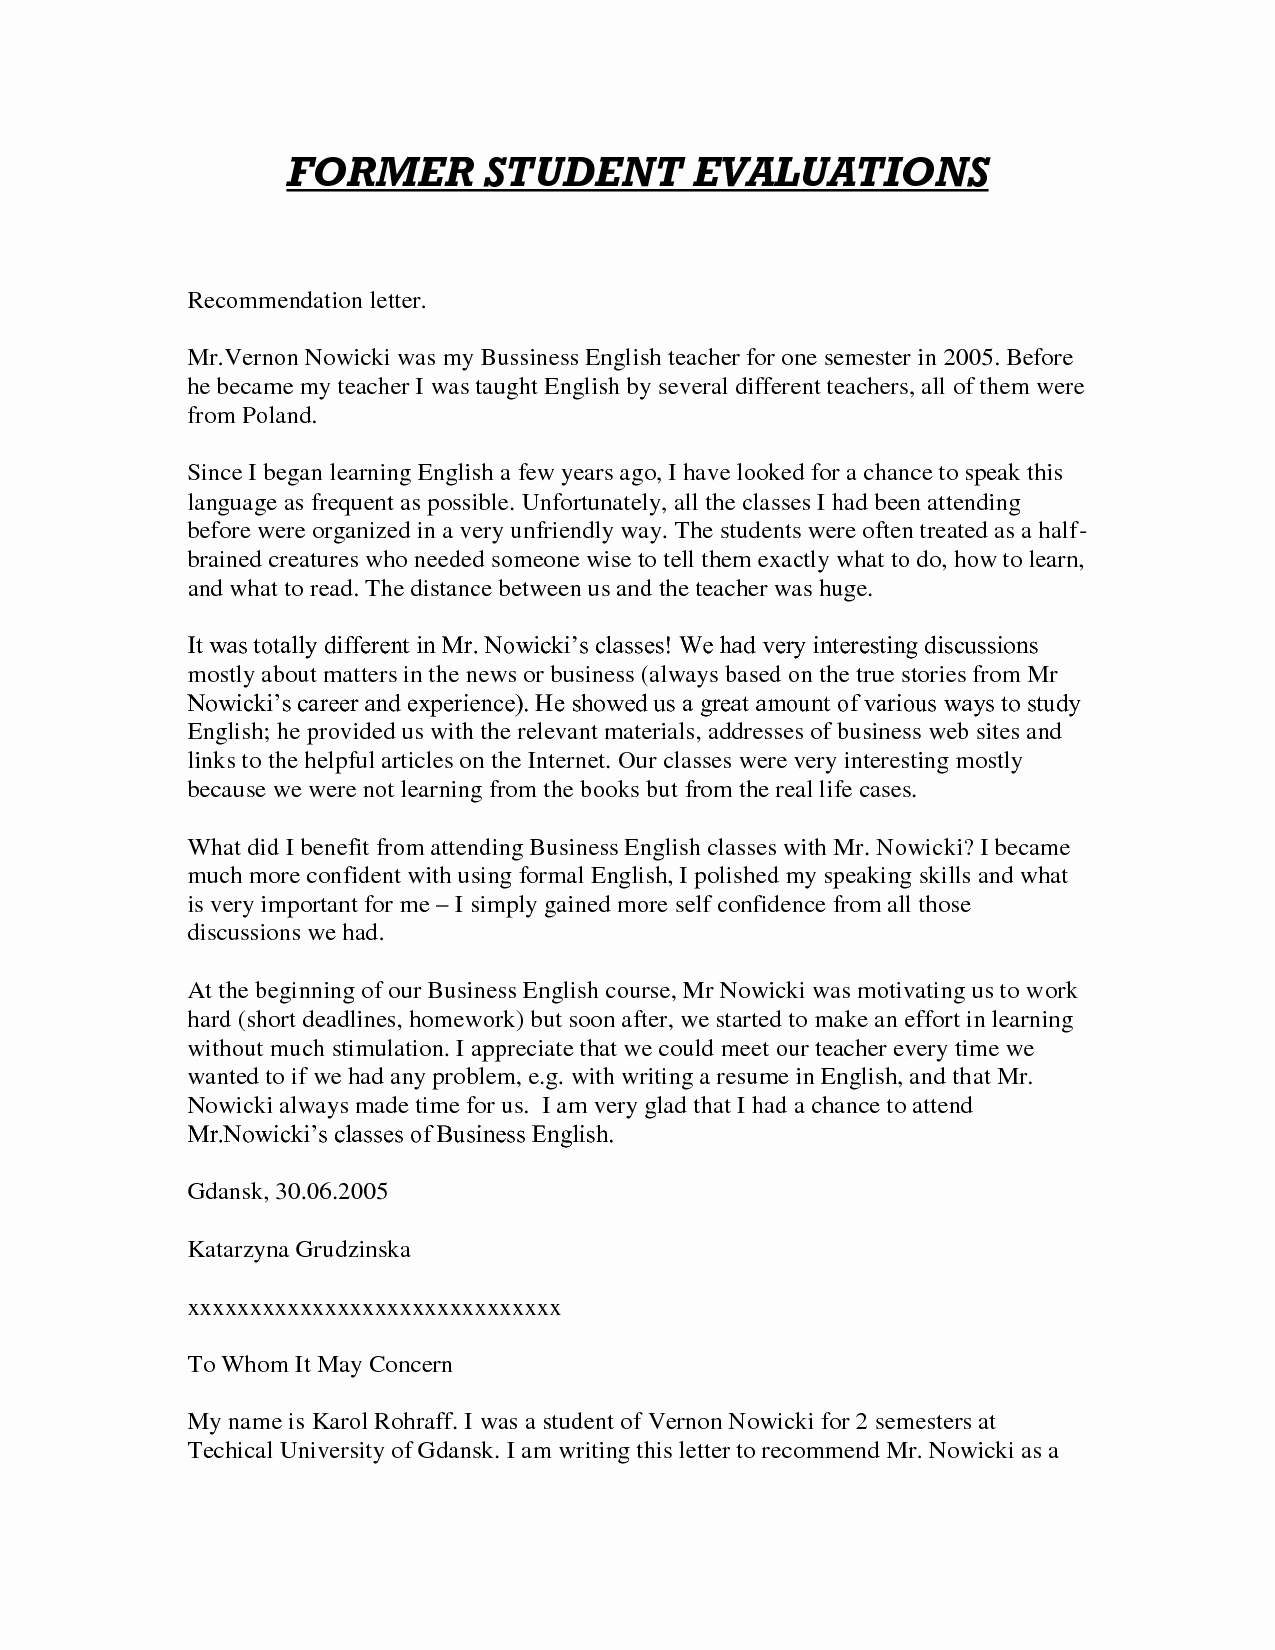 Teacher Letters Of Recommendation New Sample Letter Of Re Mendation for Teacher